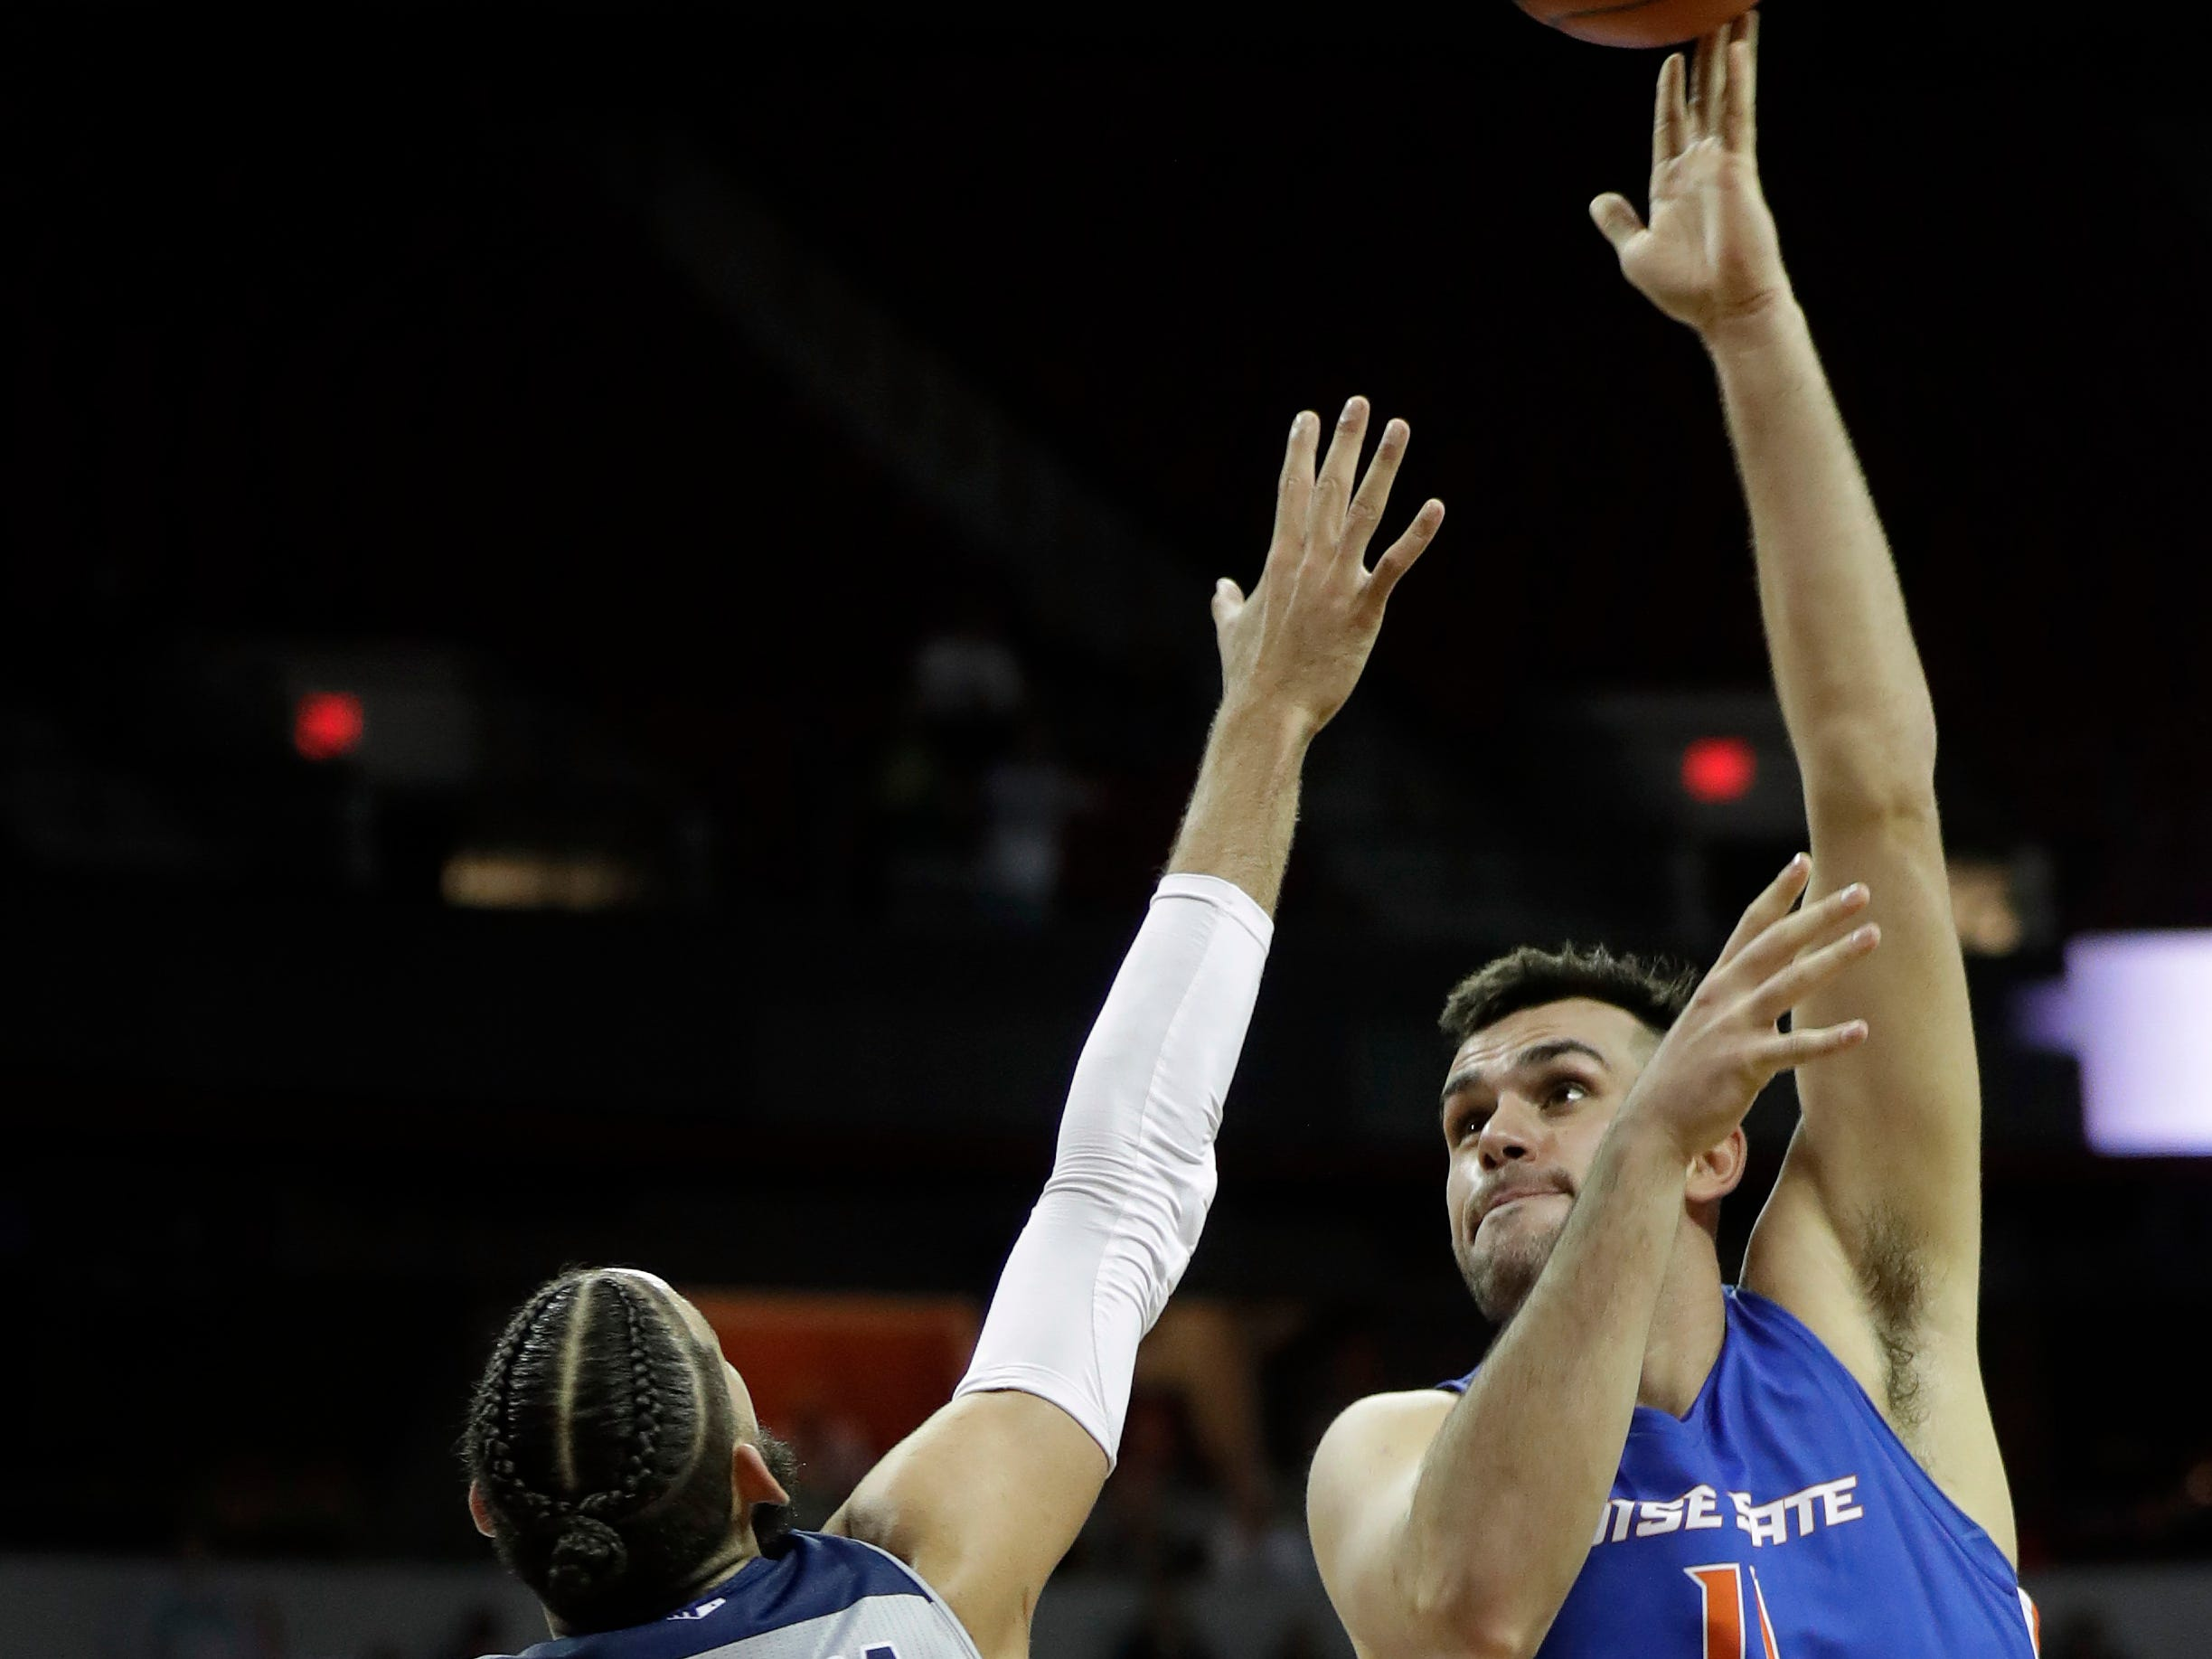 Boise State's Zach Haney, right, shoots as Nevada's Cody Martin defends during the second half of an NCAA college basketball game in the Mountain West Conference men's tournament Thursday, March 14, 2019, in Las Vegas. (AP Photo/Isaac Brekken)